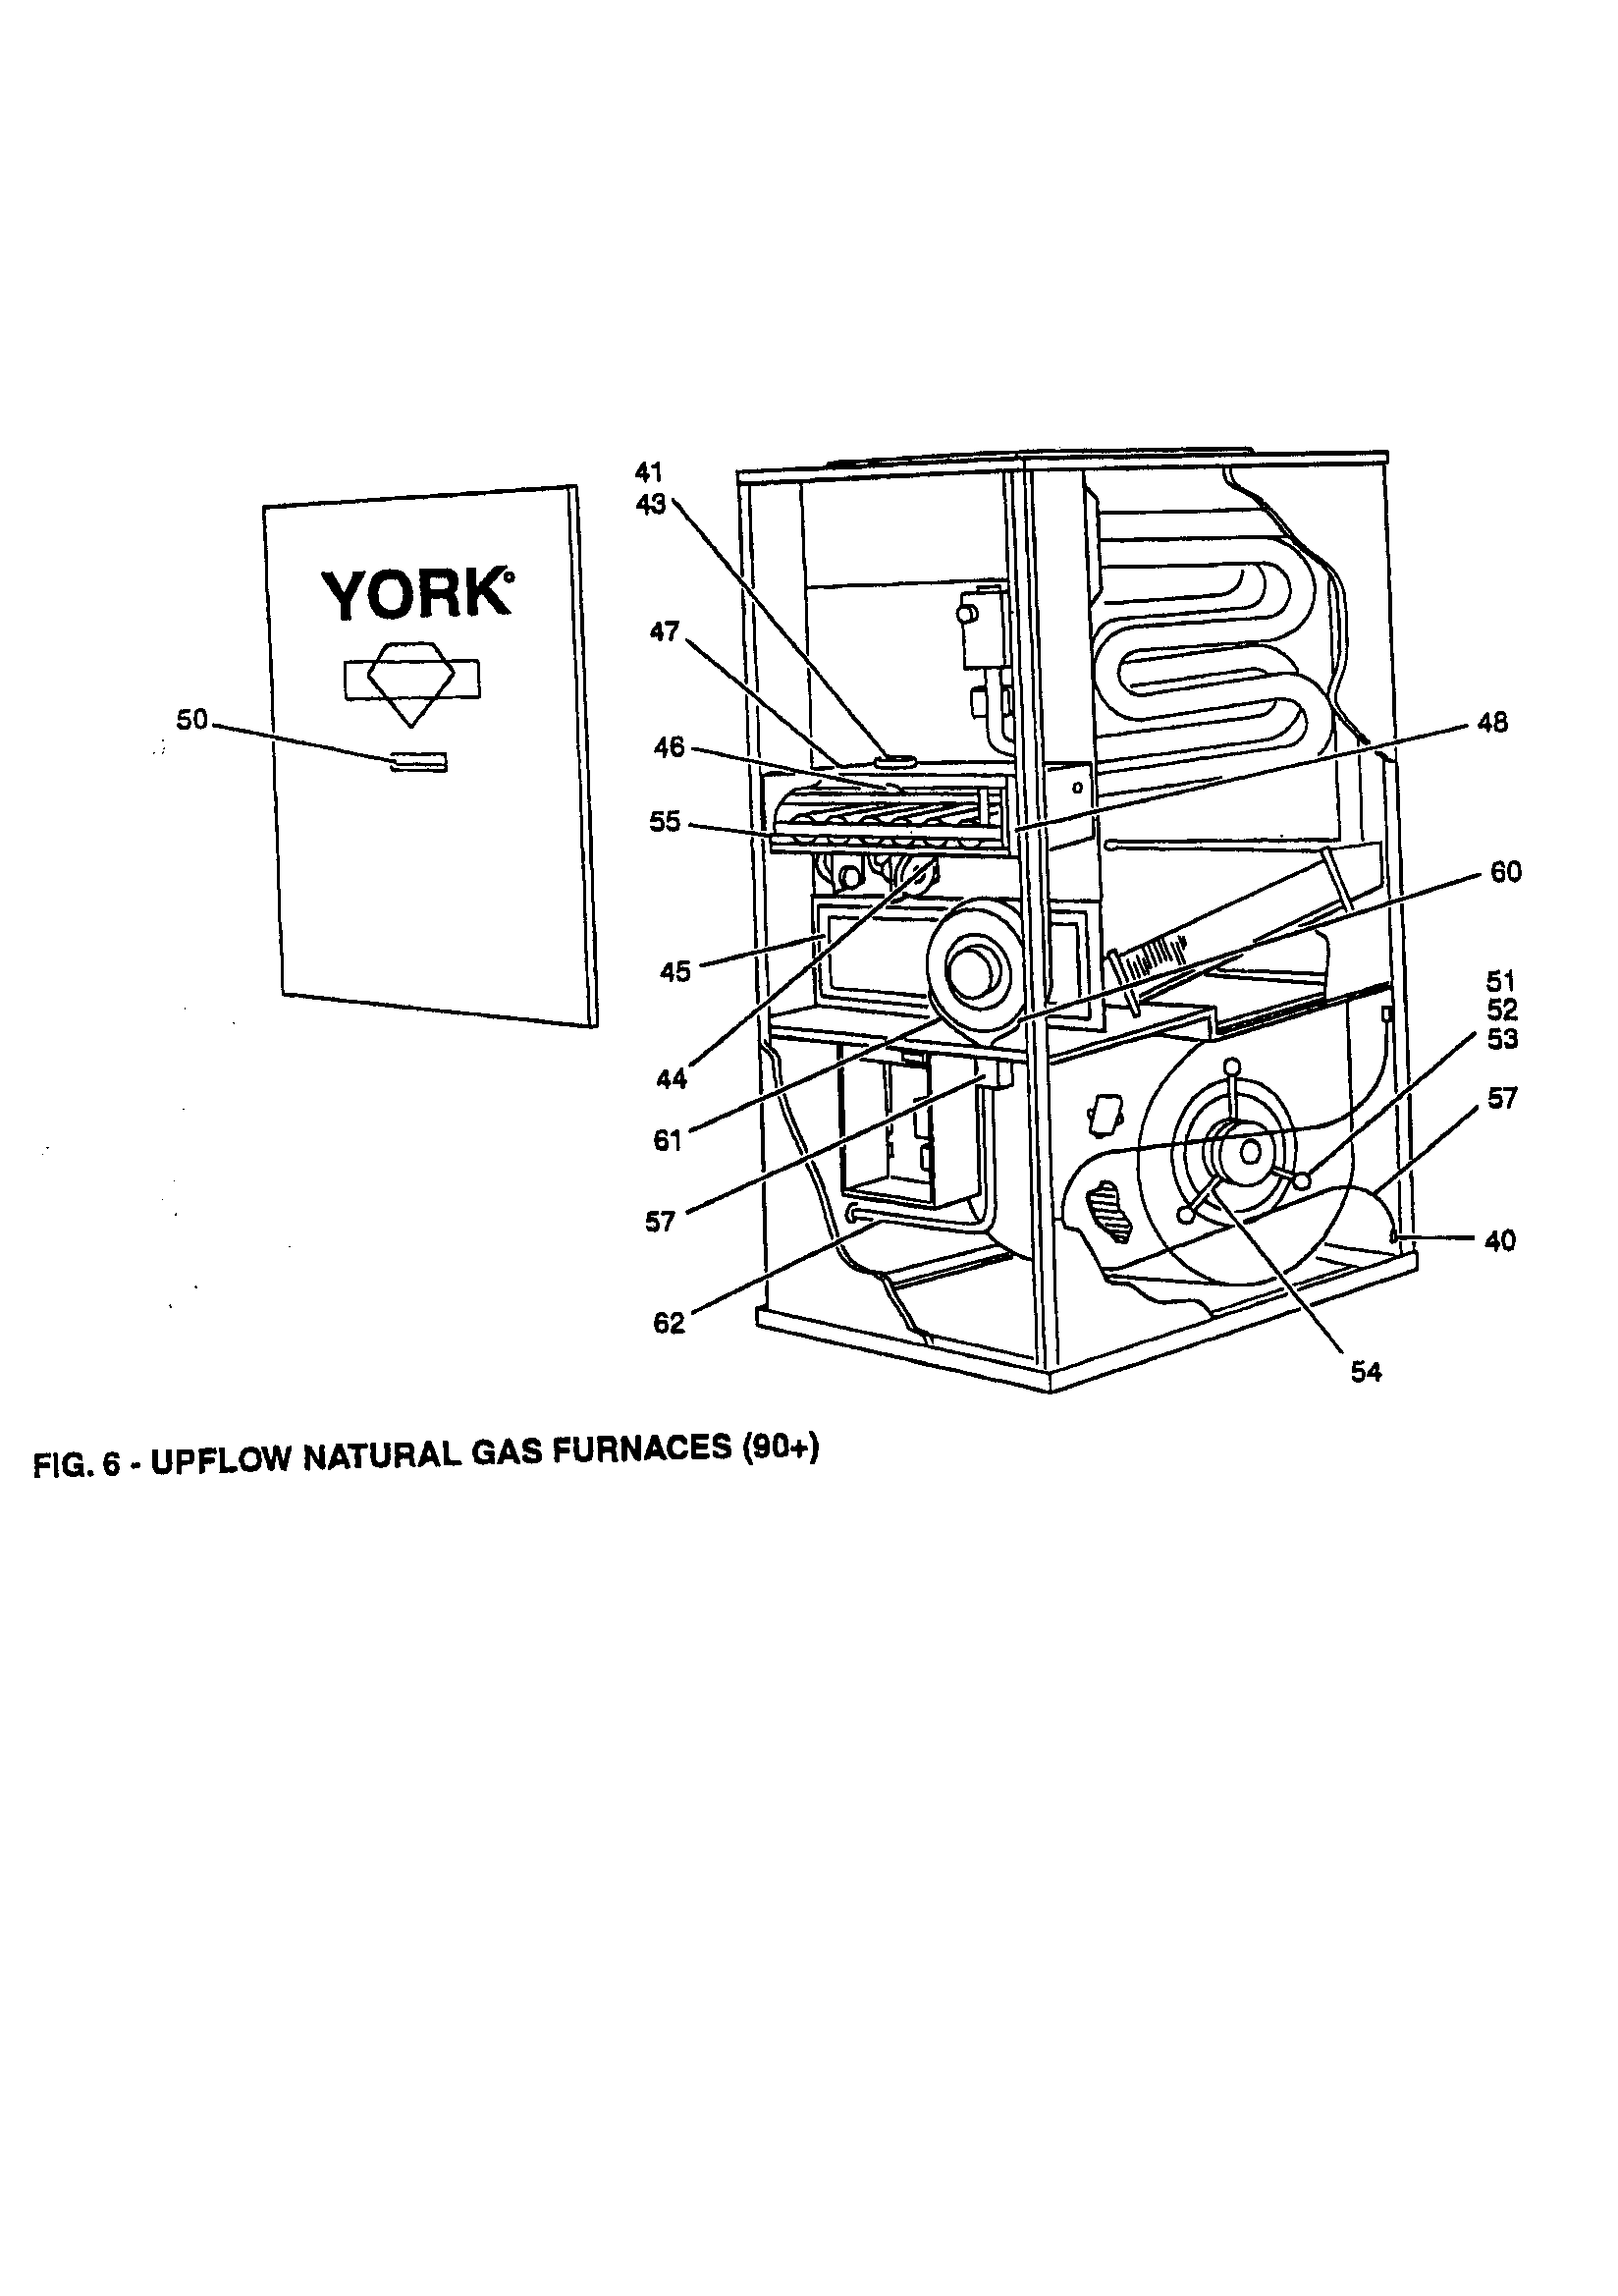 York model P3URD20N13001B furnace/heater, gas genuine parts